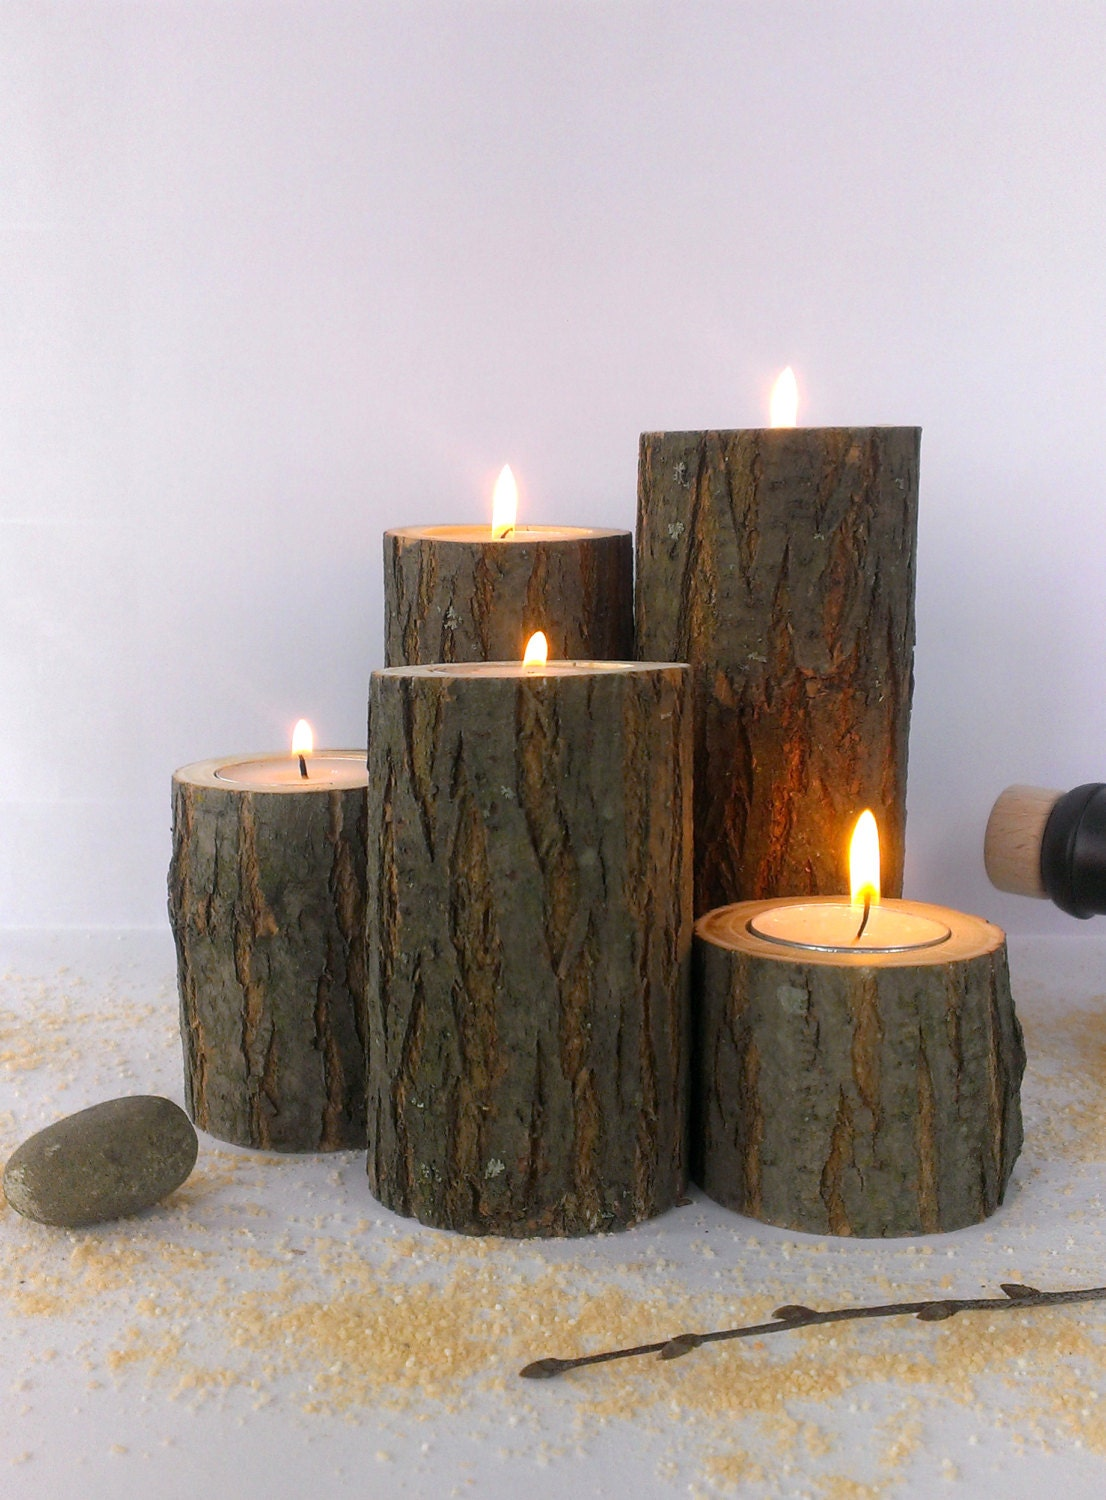 Acacia tree branch candle holders tea light holder rustic for Rustic house candles